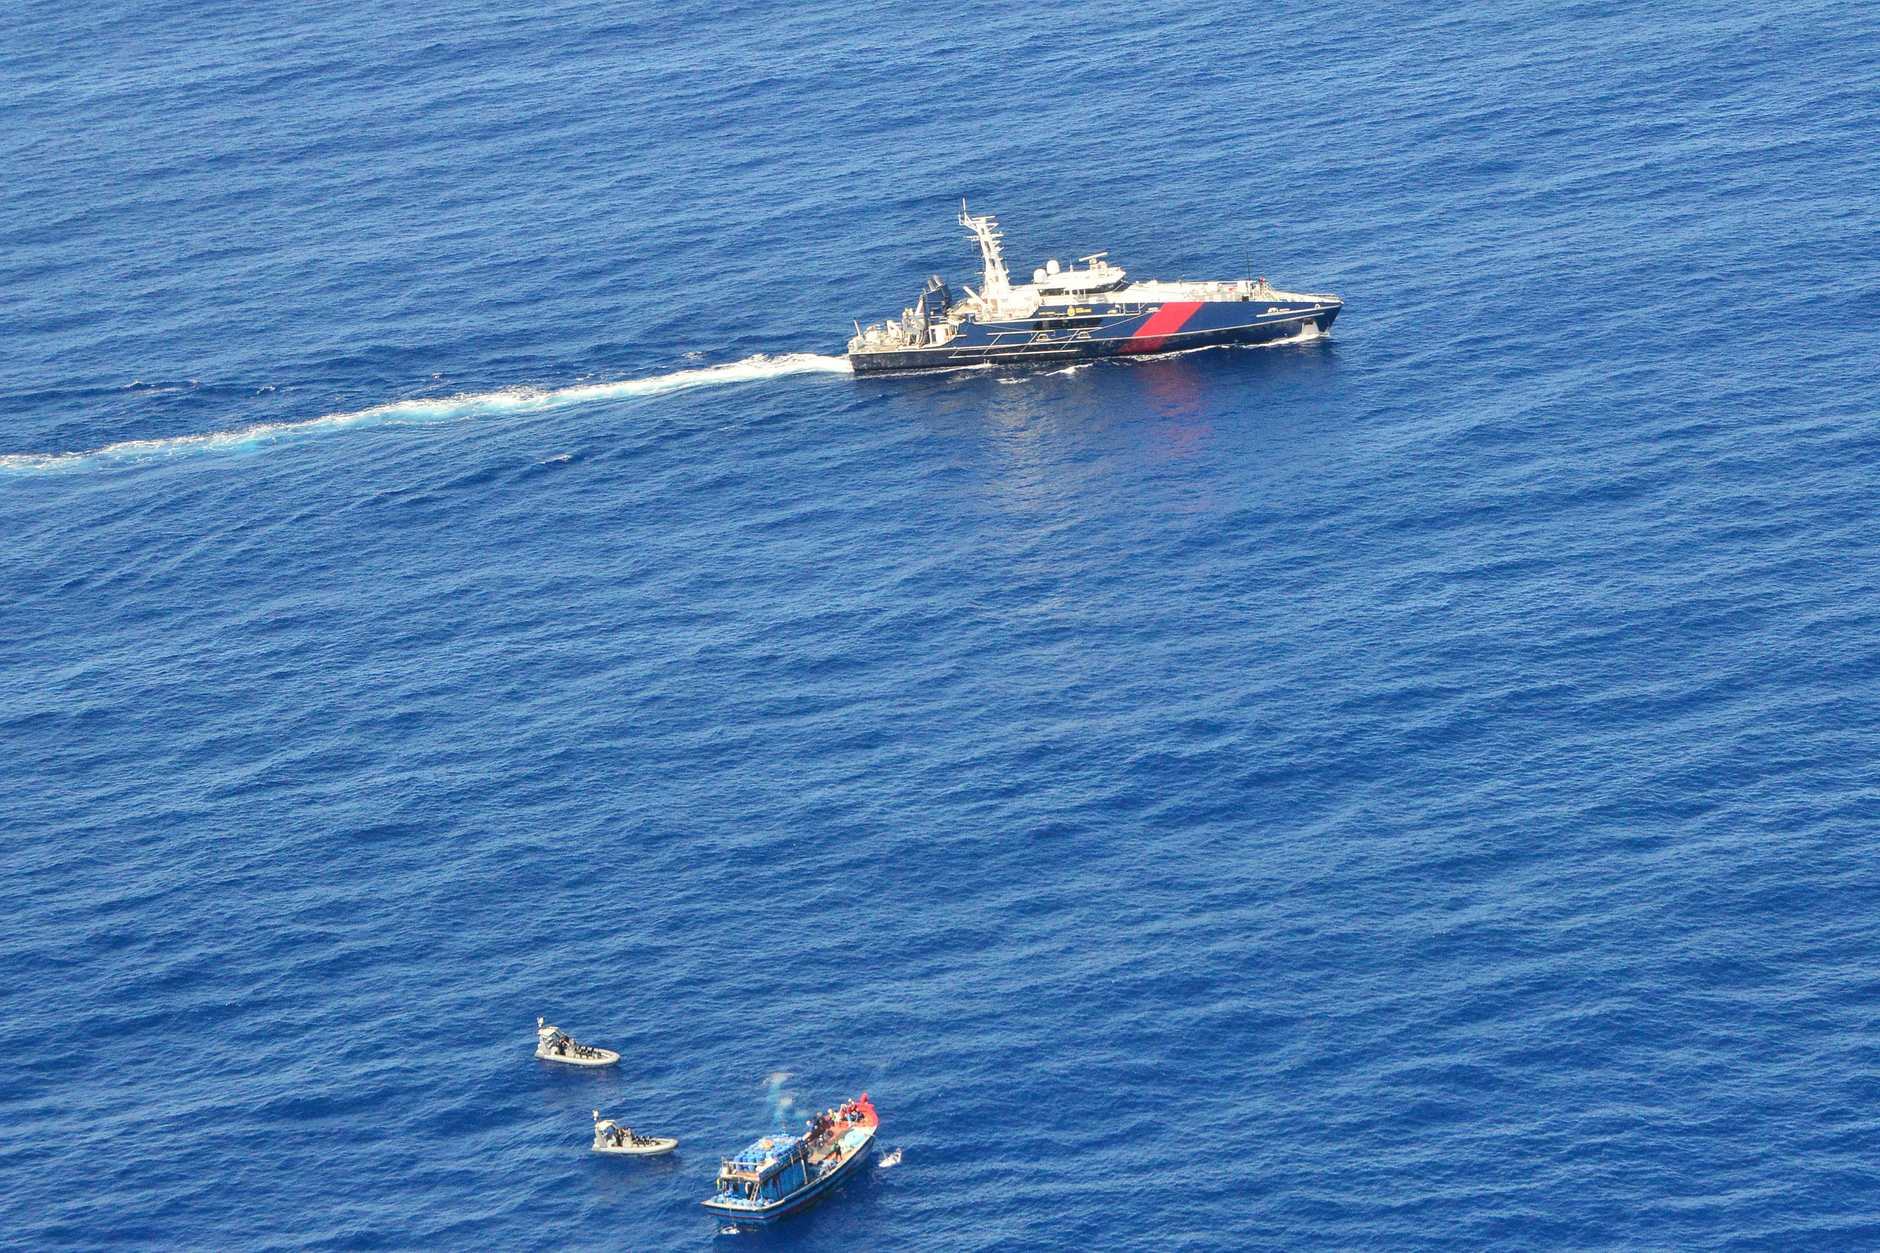 A Vietnamese fishing vessel and its crew of 15 men suspected of illegally fishing near Saumarez reef in the Coral Sea Commonwealth Marine Reserve has been apprehended.